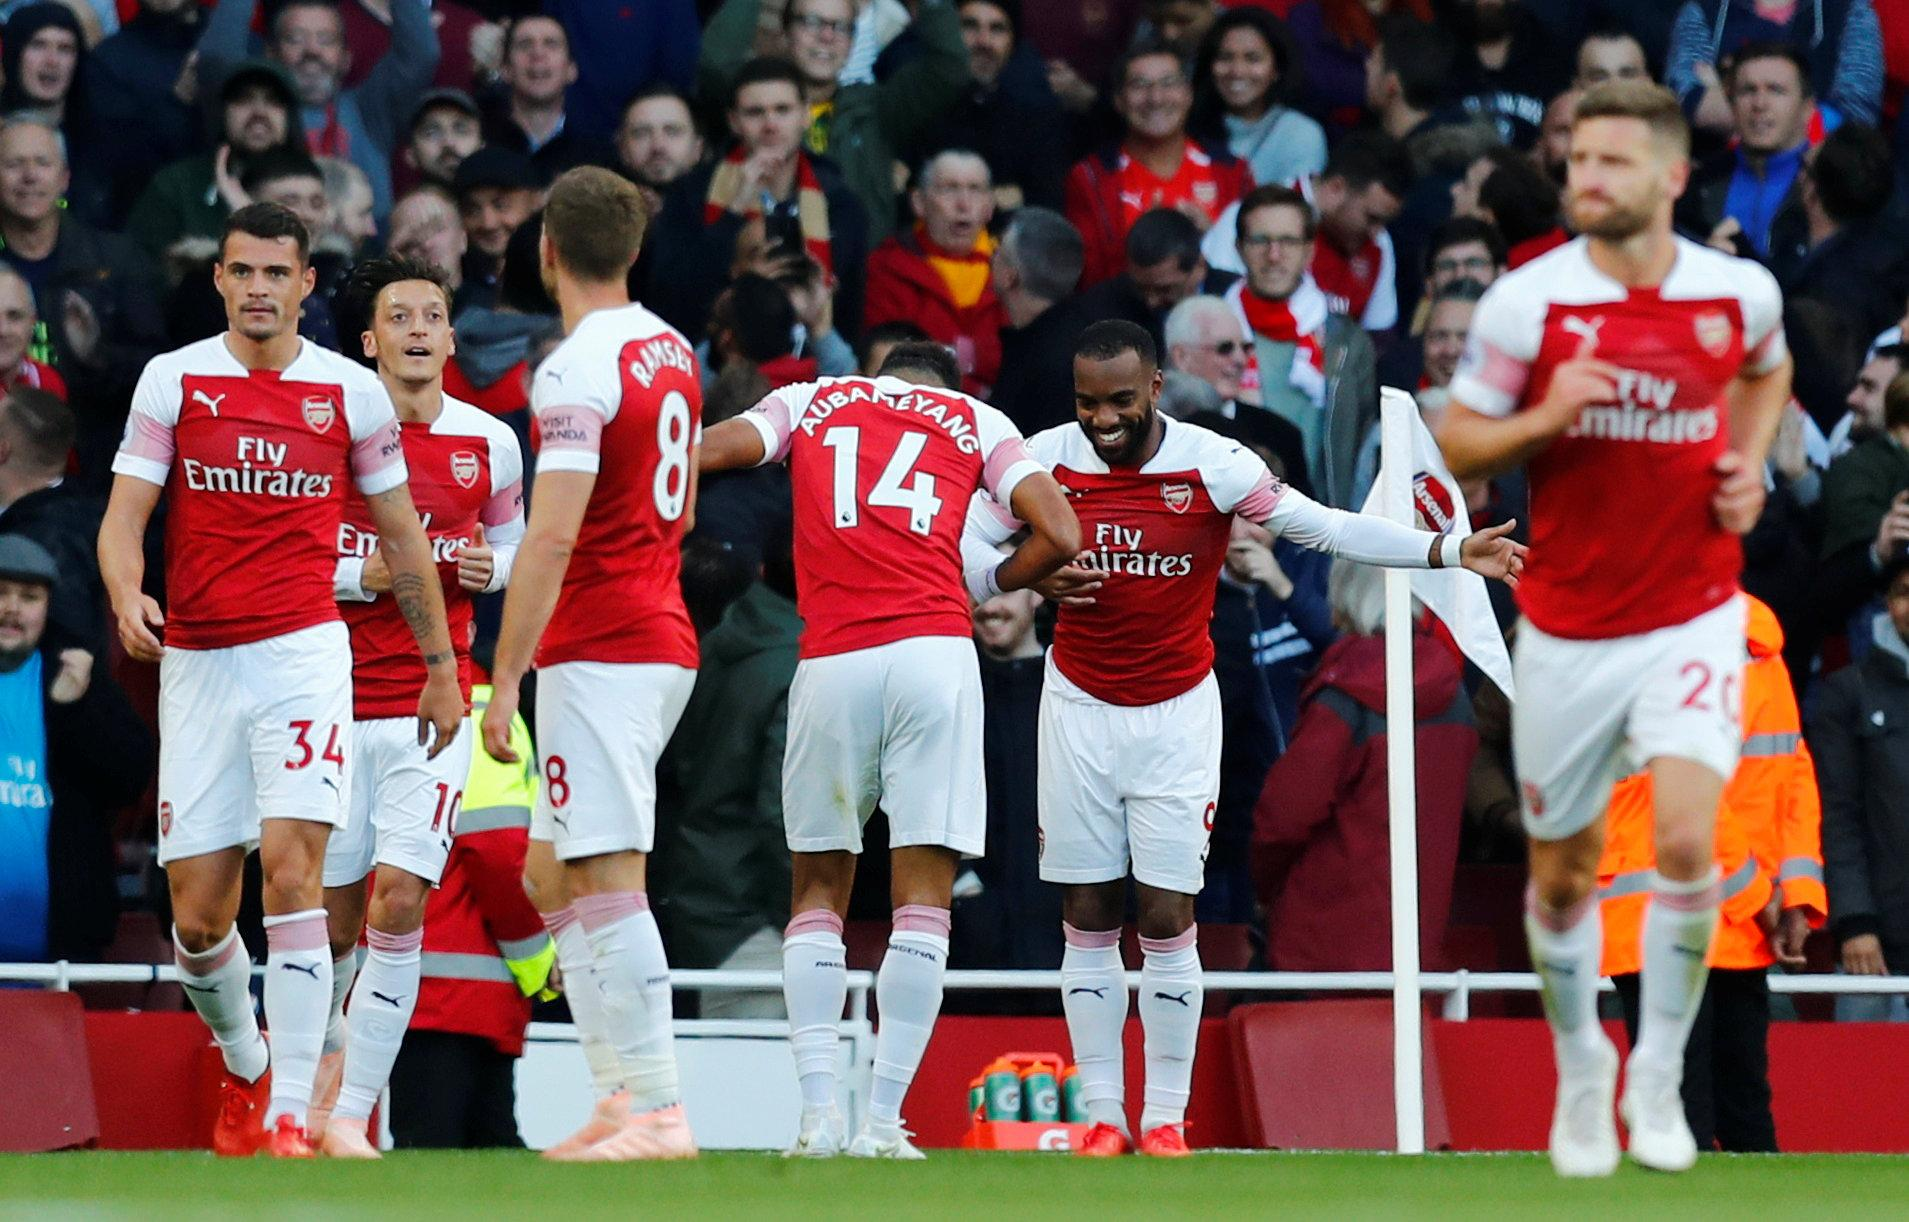 Alexandre Lacazette opened the scoring for Arsenal with a delightful finish before Pierre-Emerick Aubameyang secured the win